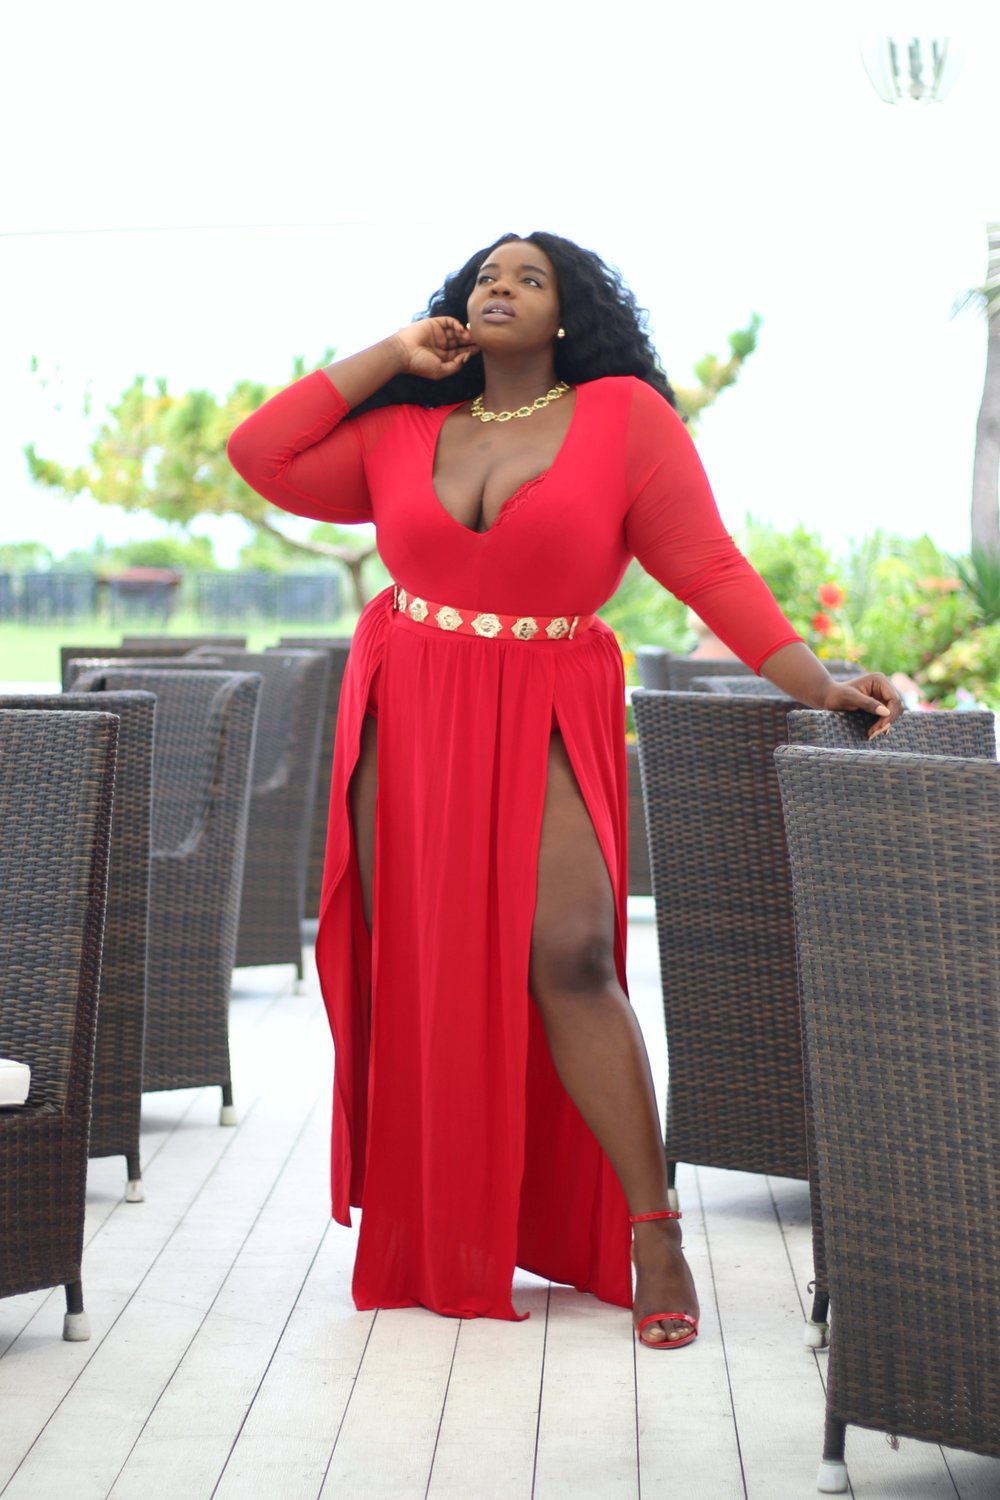 Maxi Dresses - Maxi dresses are a vacation essential. Dress it up or down with the right accessories. This piece is from Boohoo plus size. Go for something bright and colorful. If you're feeling daring, pick something with a sexy detail like these double slits. Shop similar plus size options below.